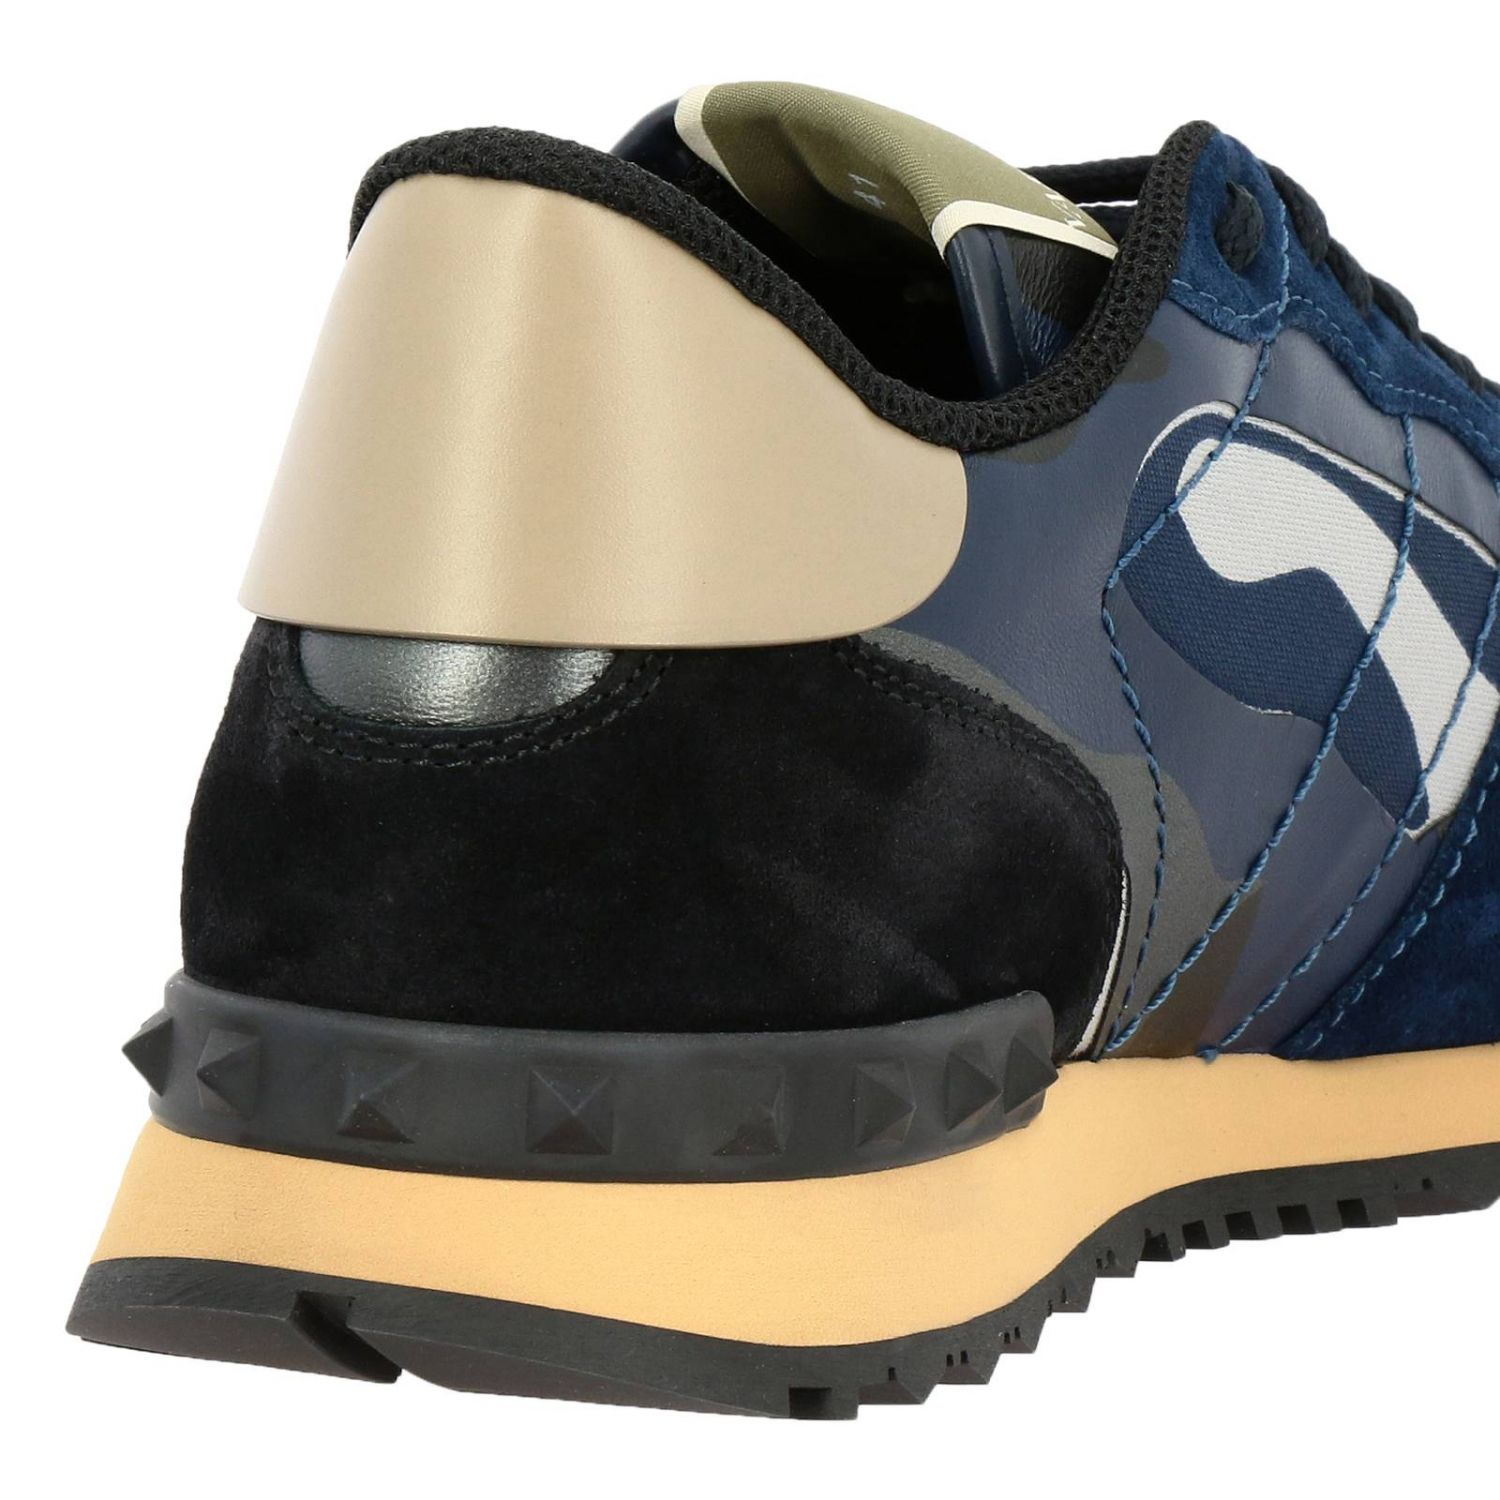 Valentino Garavani Rock runner camouflage suede and leather sneakers blue 4